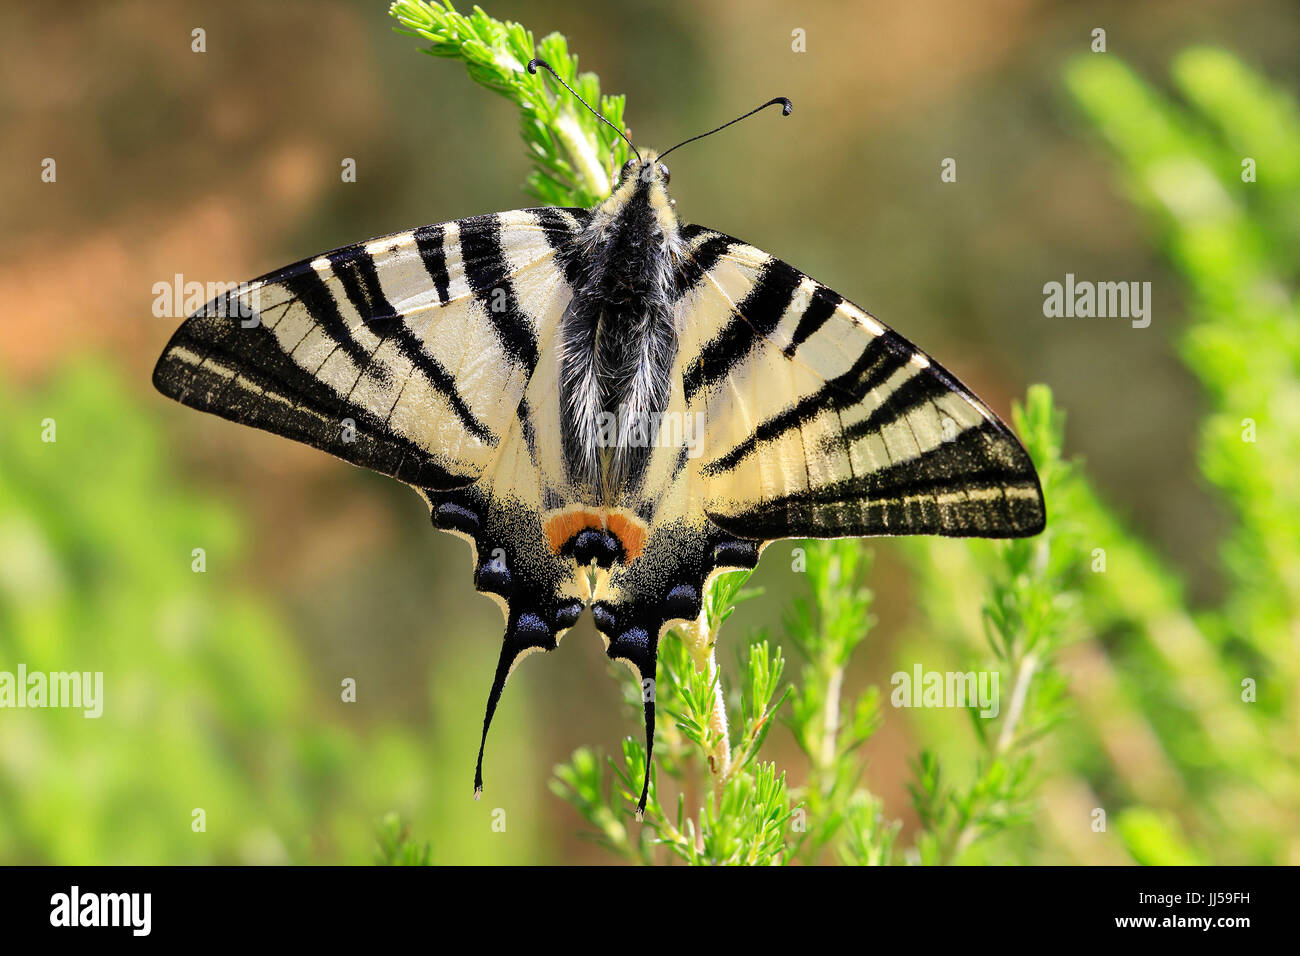 Scarce Swallowtail (Iphiclides podalirius) on a plant, einzeln, single, one - Stock Image